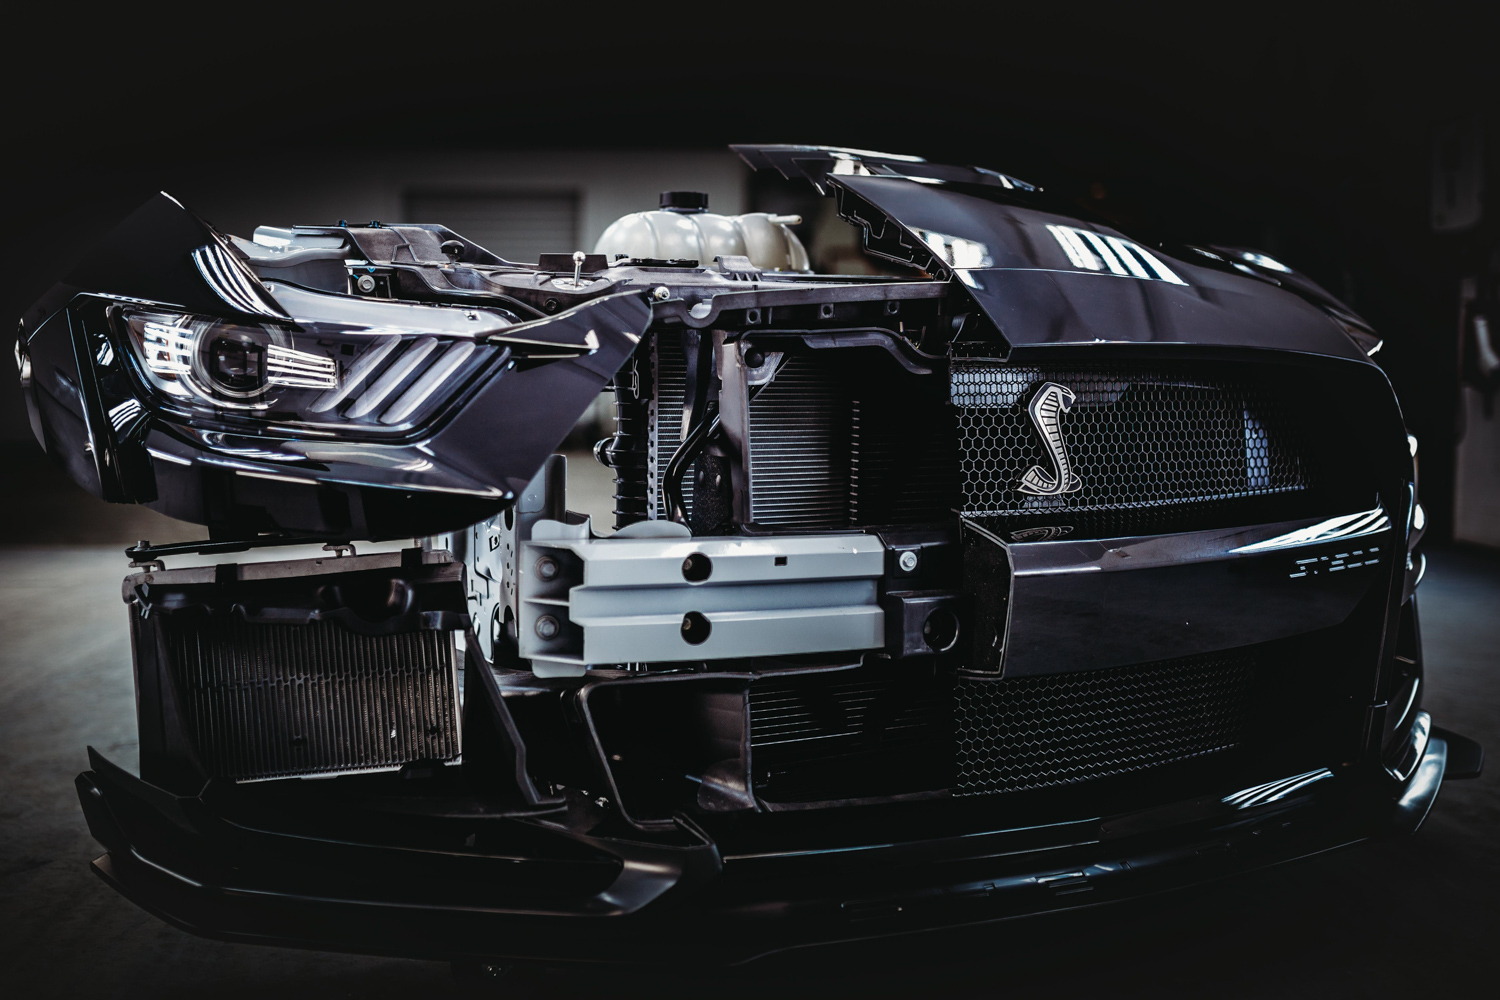 2020 Ford Mustang Shelby GT500 front clip cutaway